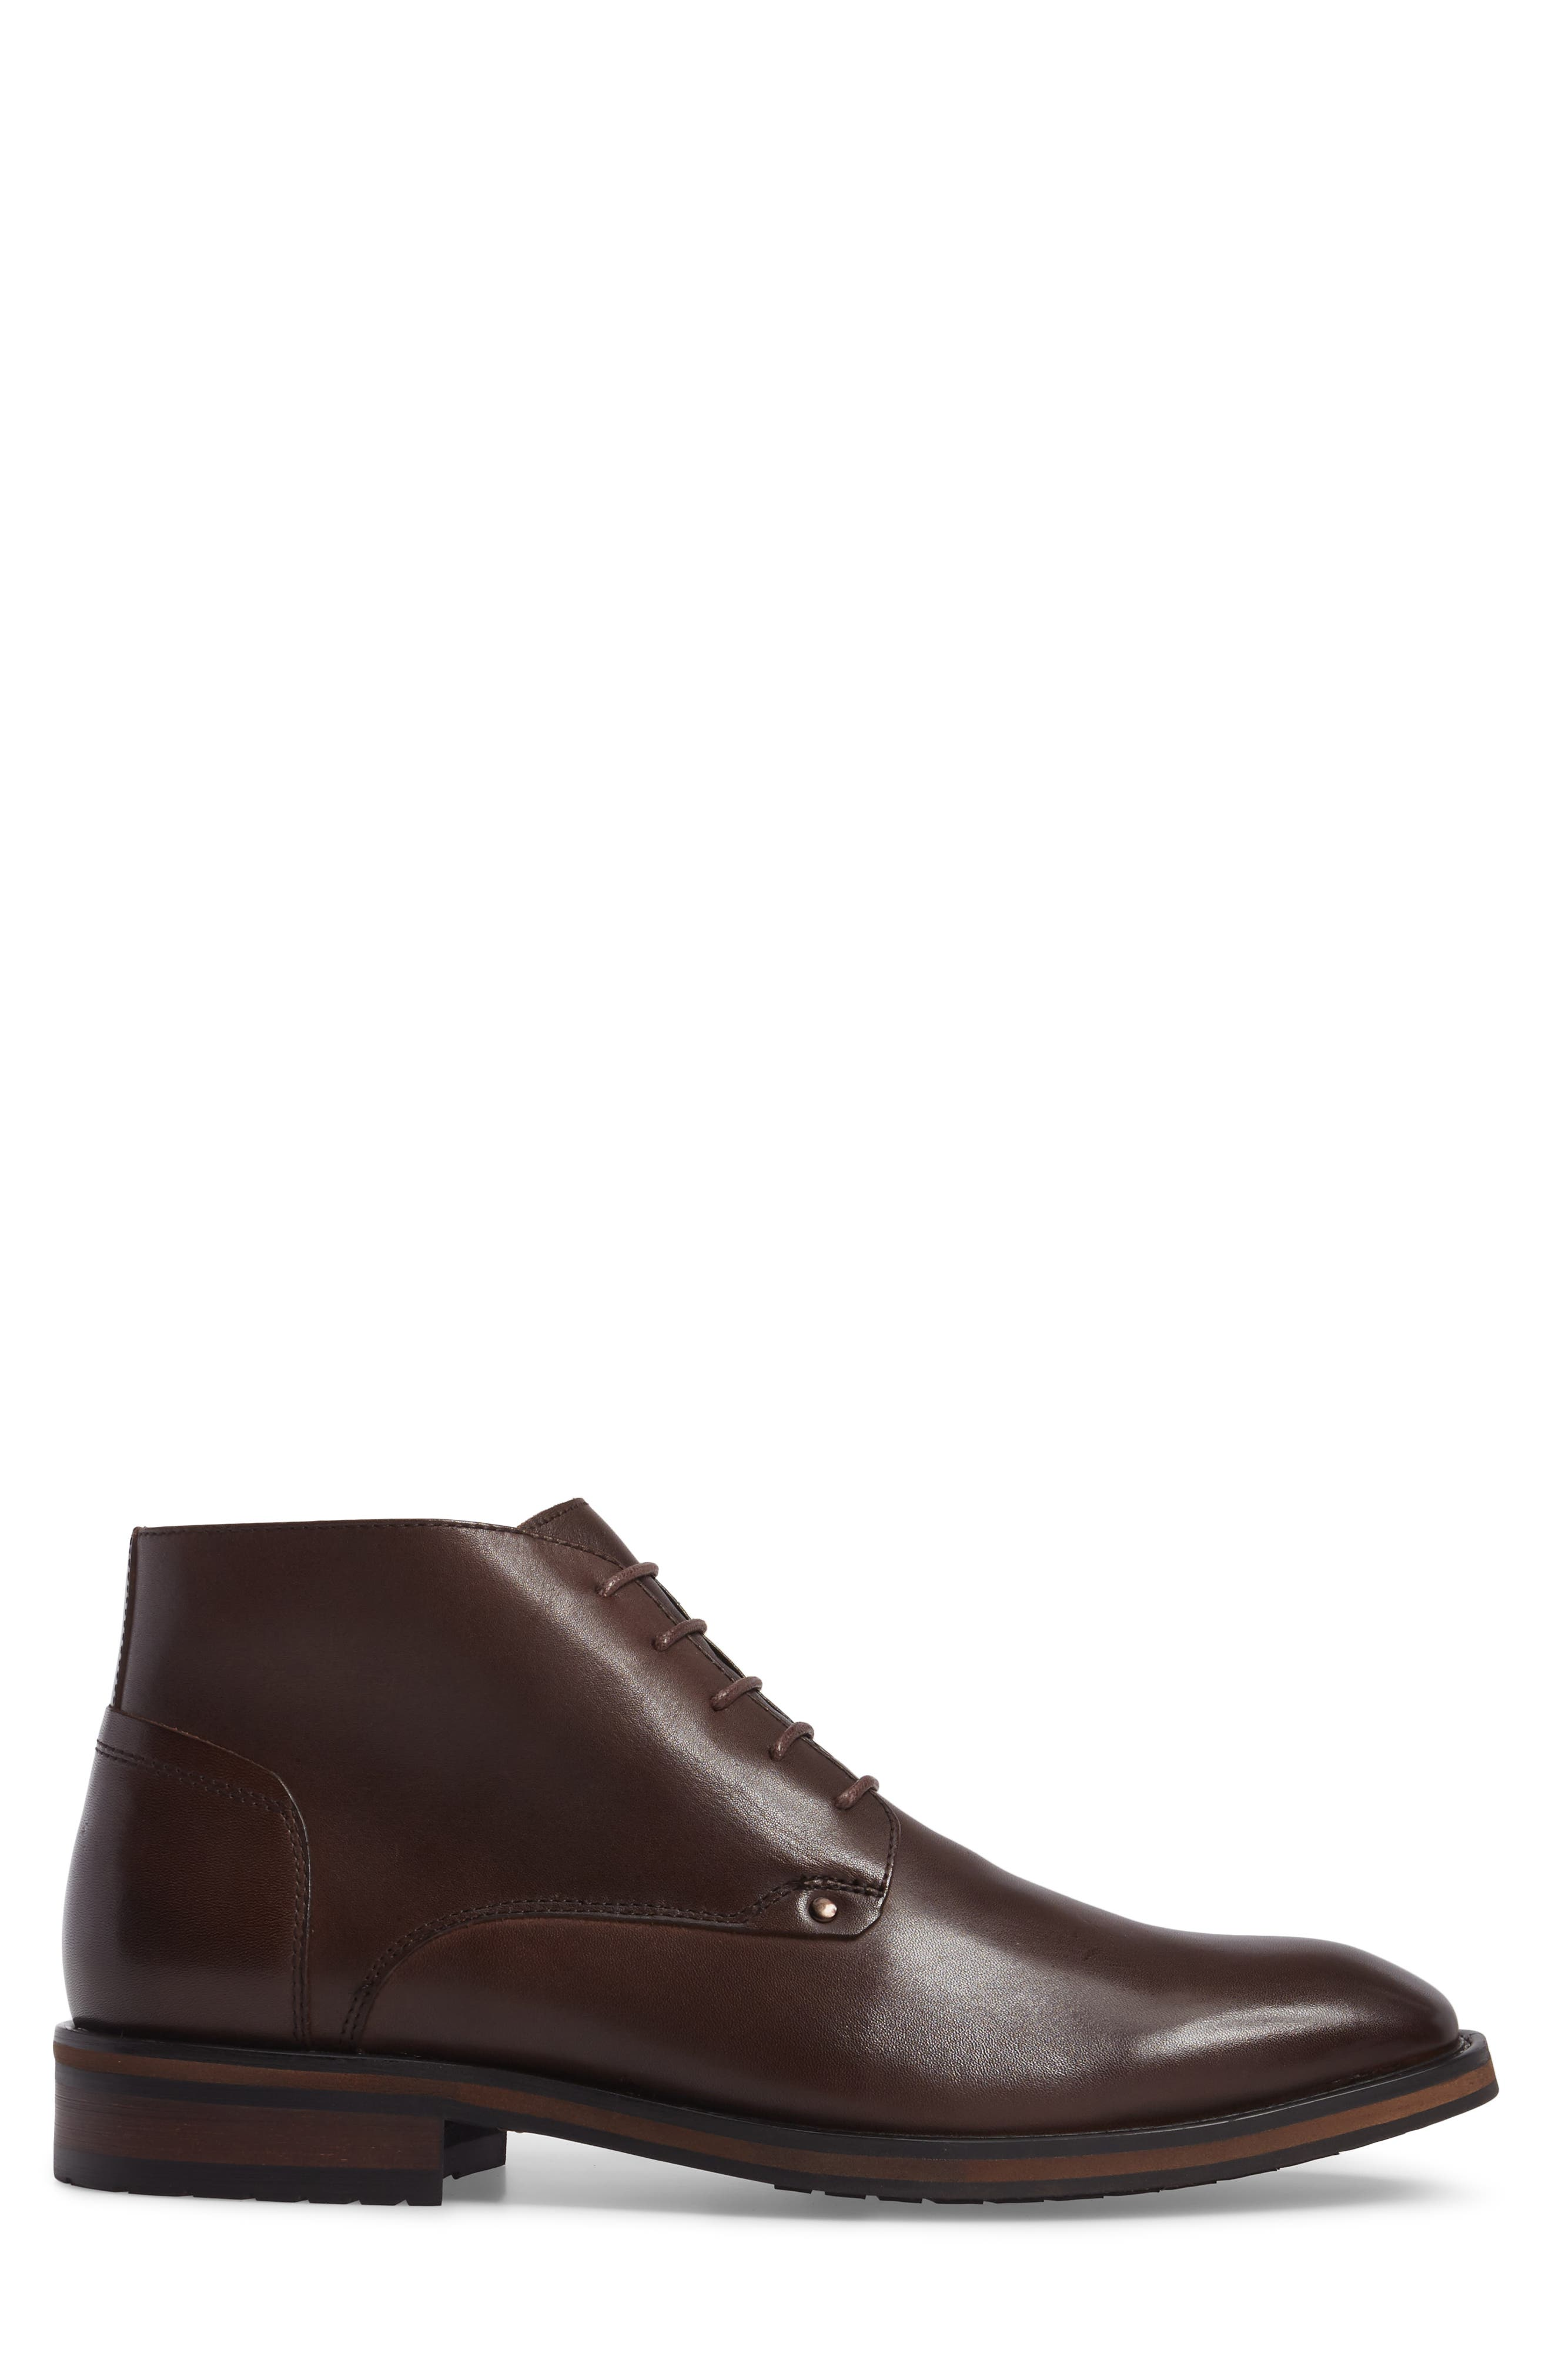 Malta Low Boot,                             Alternate thumbnail 3, color,                             Brown Leather